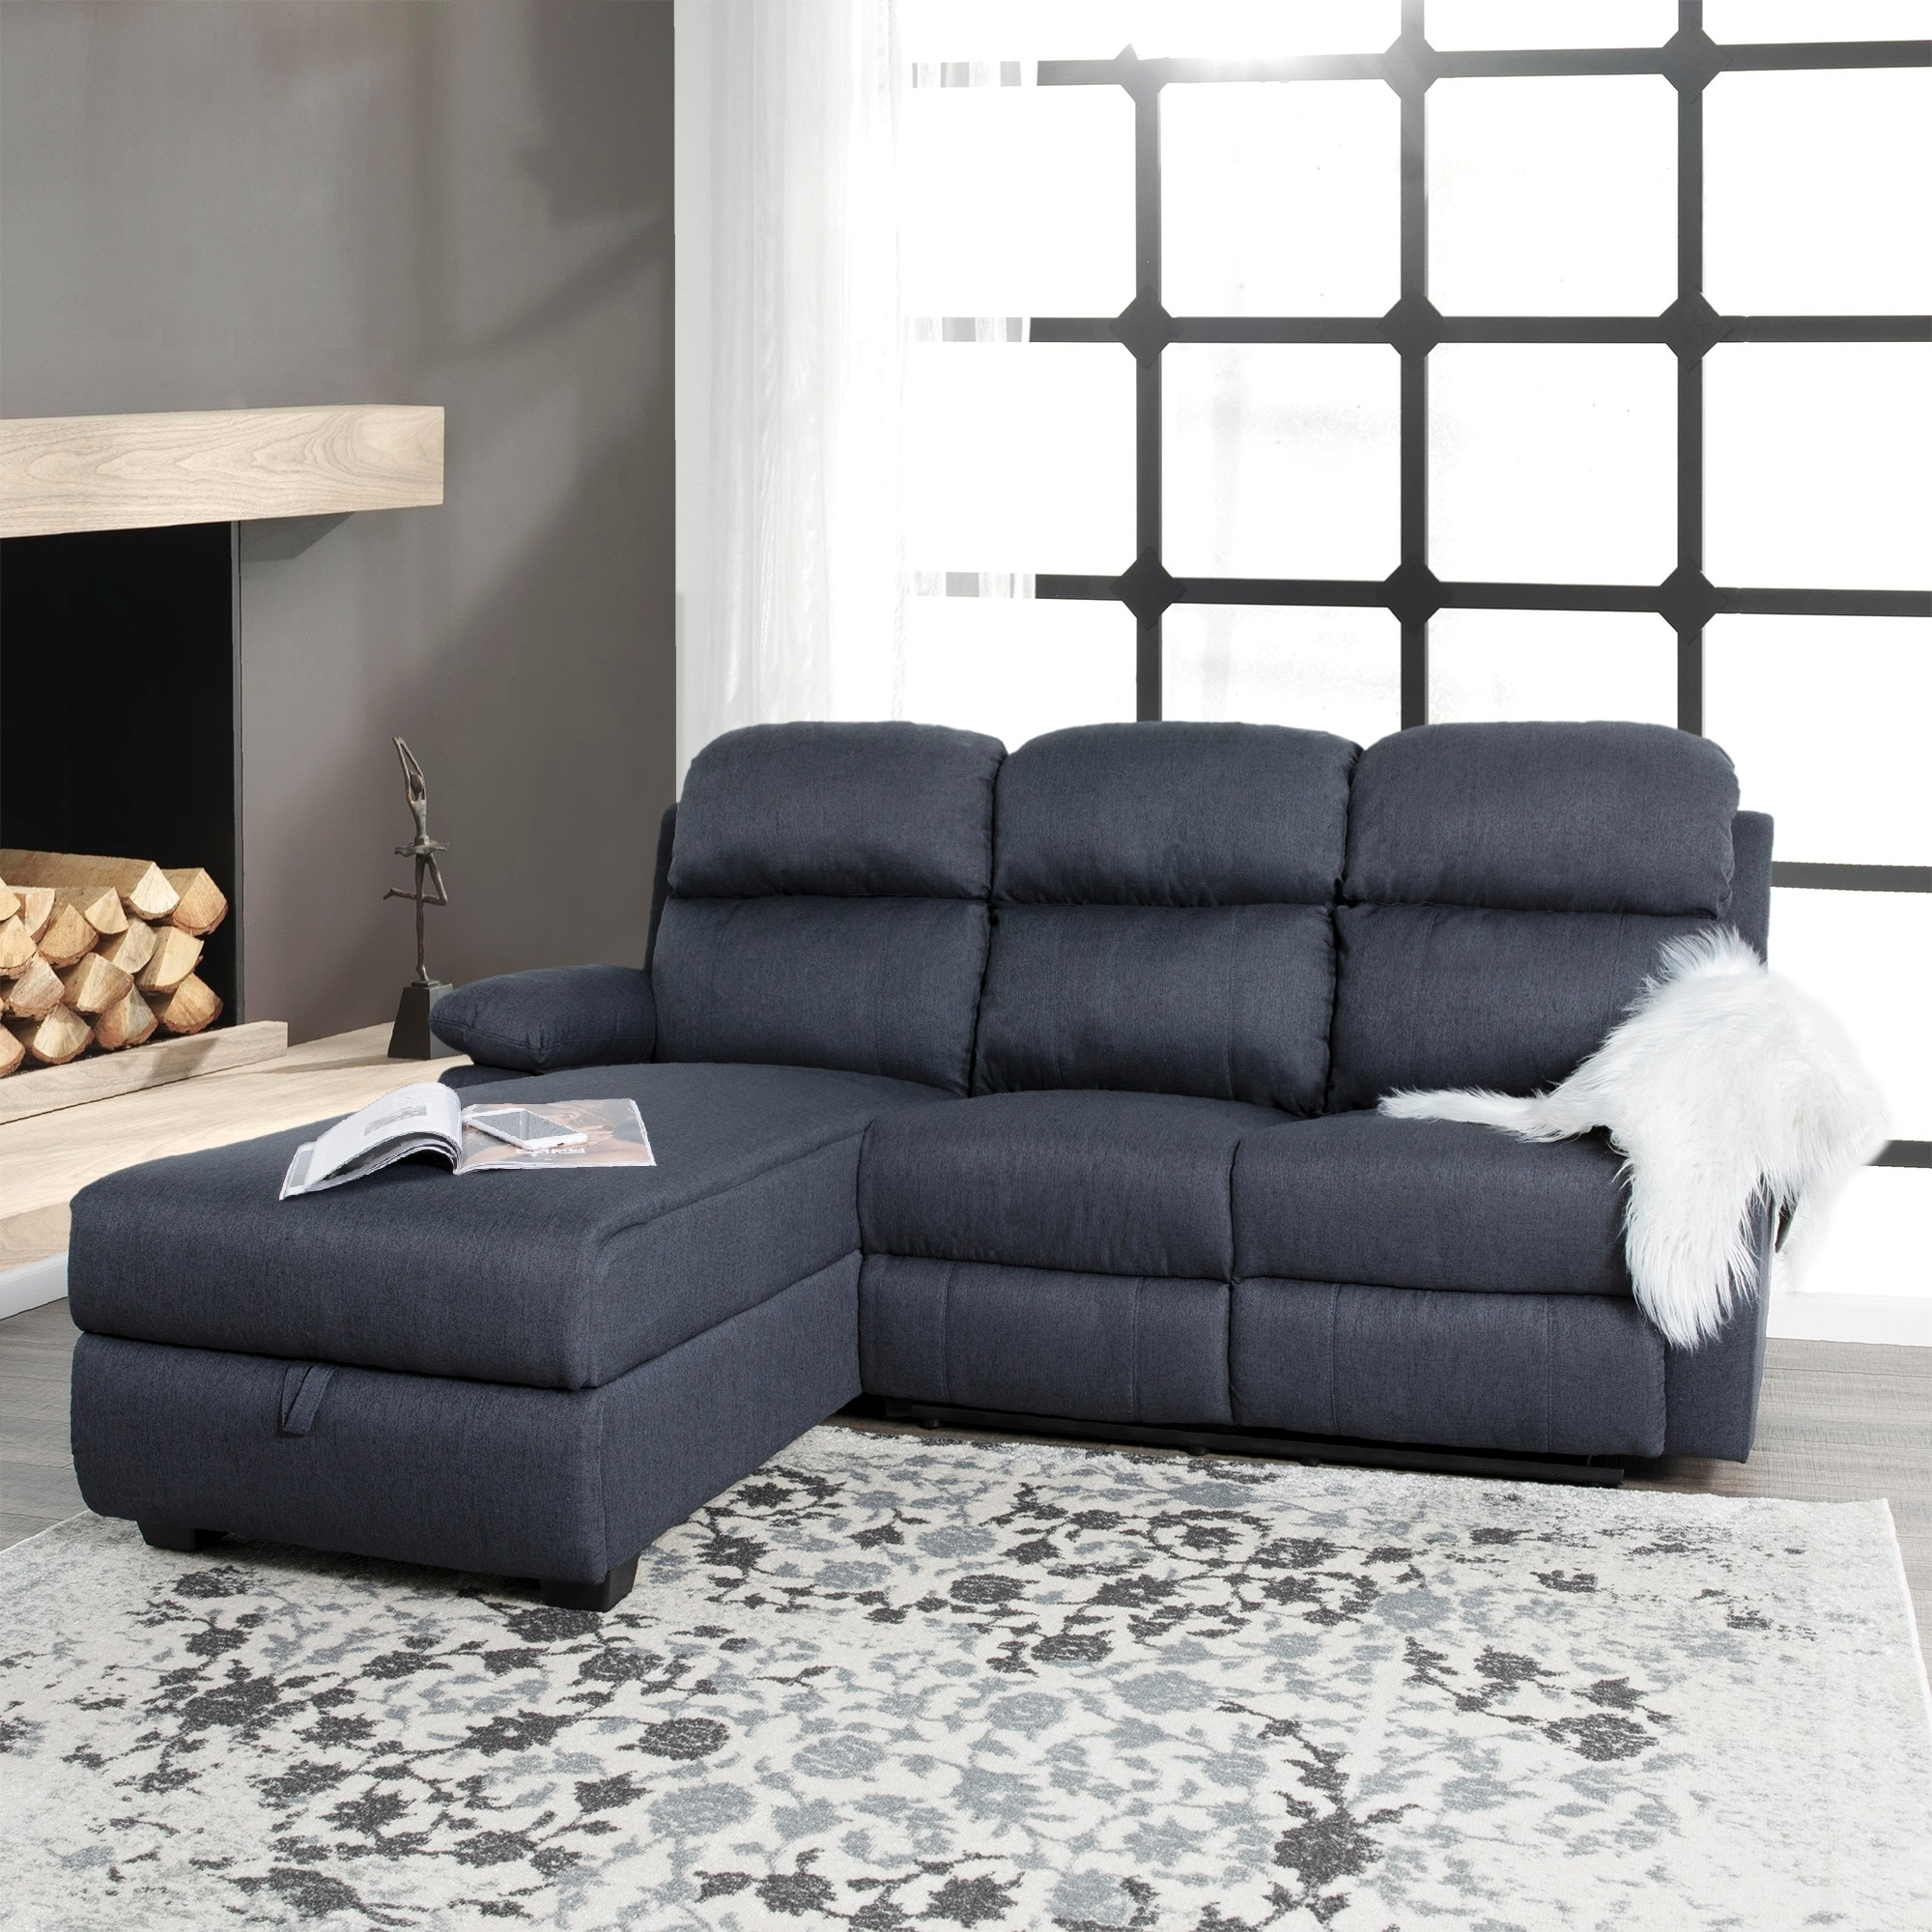 Melody Recliner L-shaped Corner Sectional Sofa with Storage - 66\